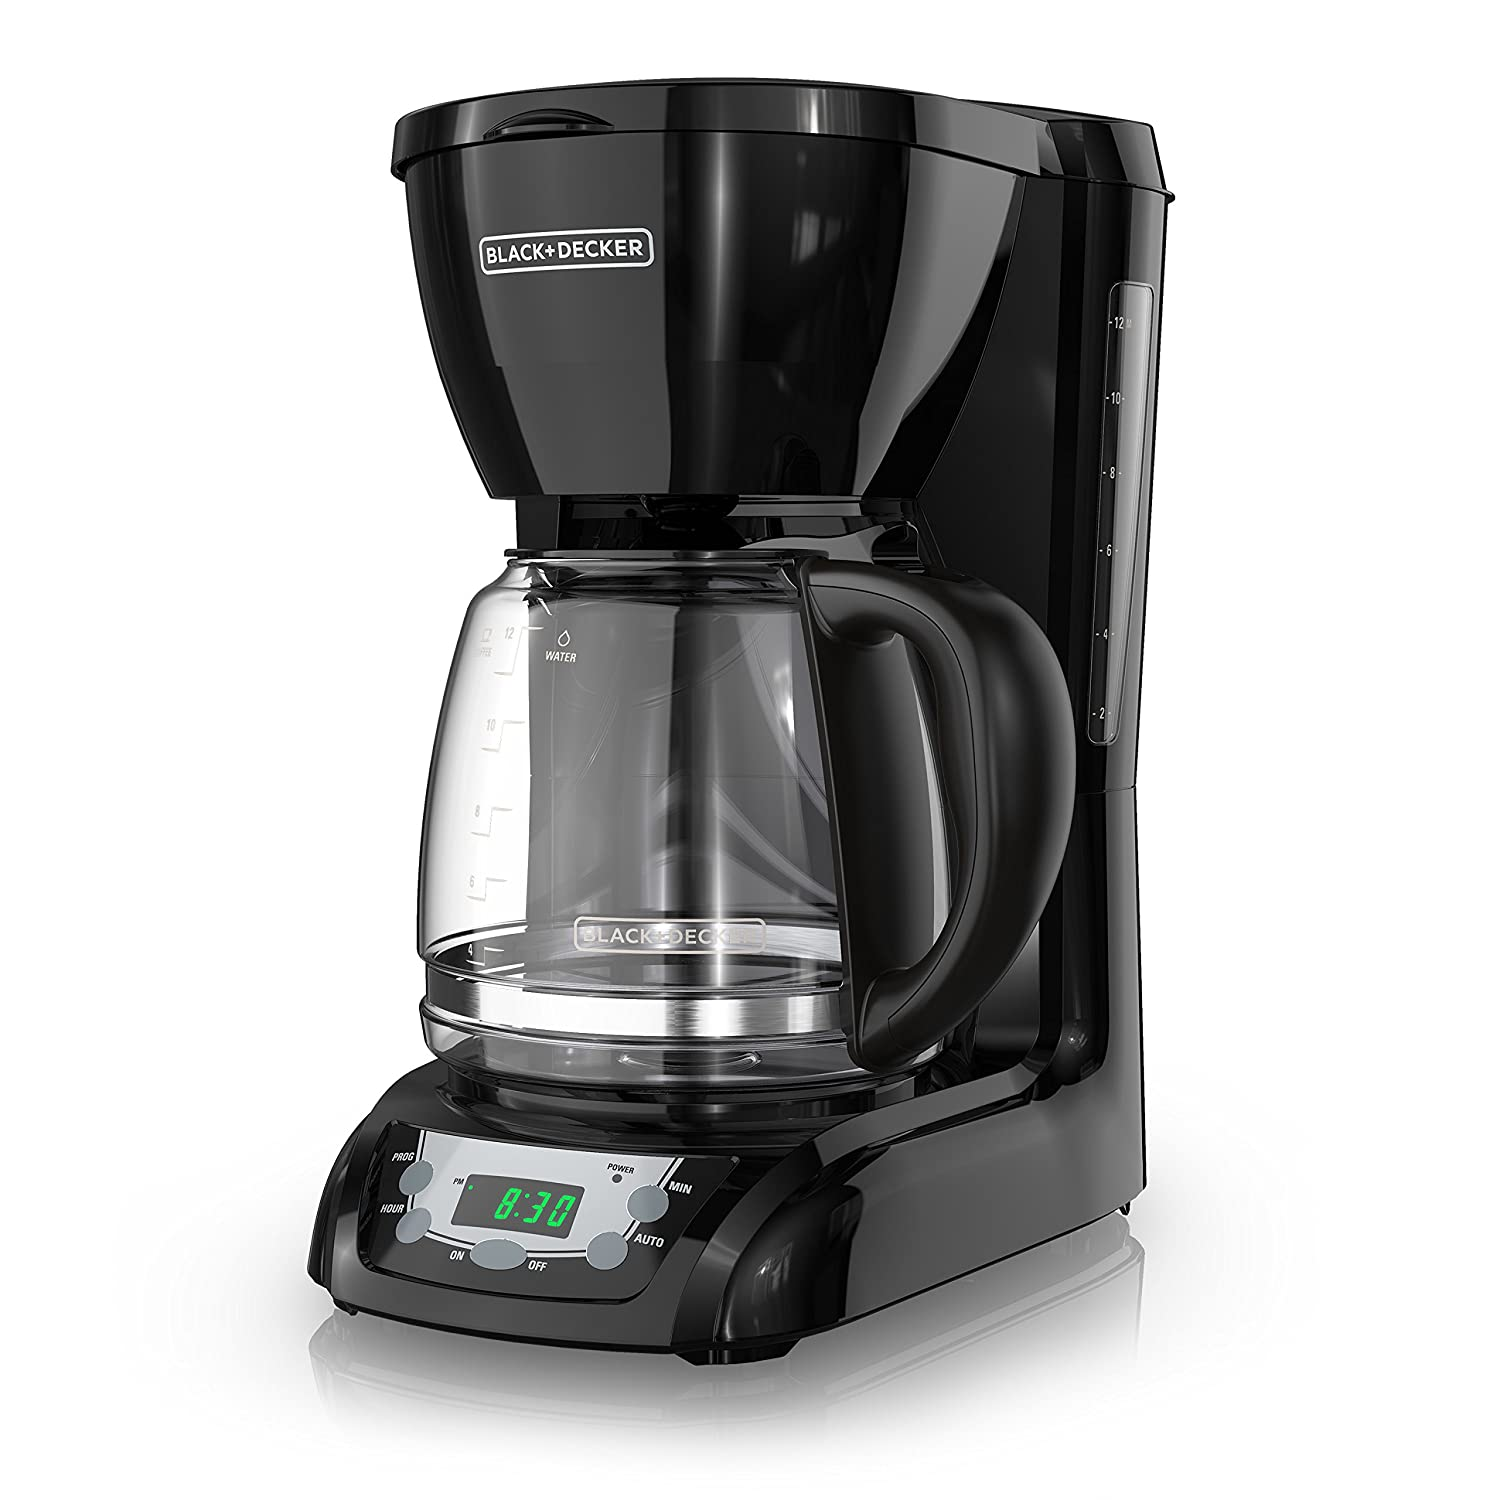 Black+Decker 12 Cup Programmable Coffeemaker, Black, Dlx1050 B by Black+Decker